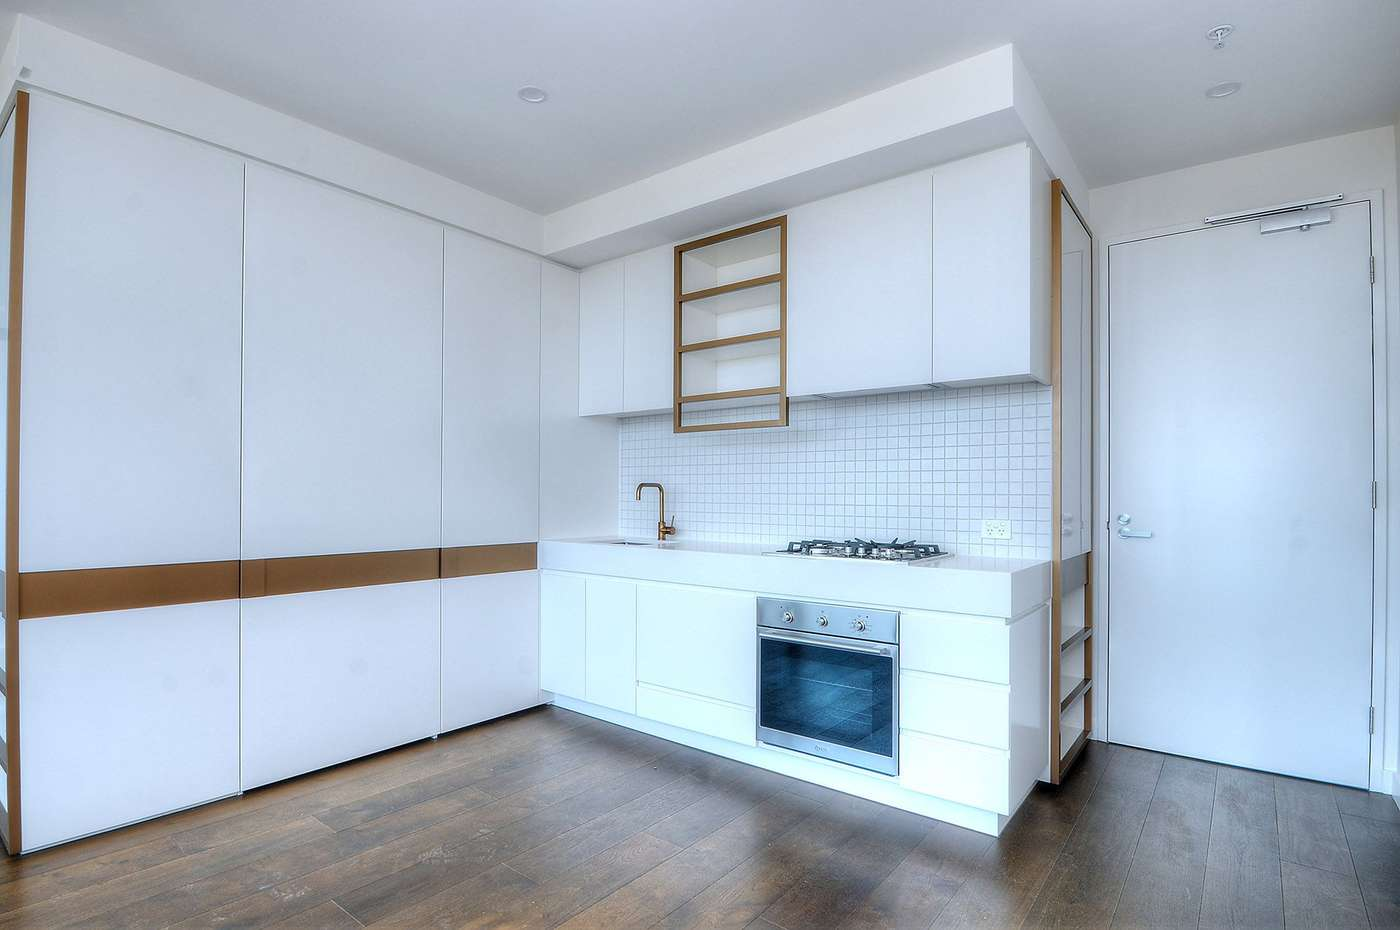 Main view of Homely apartment listing, 1112/52-54 O'Sullivan Road, Glen Waverley, VIC 3150